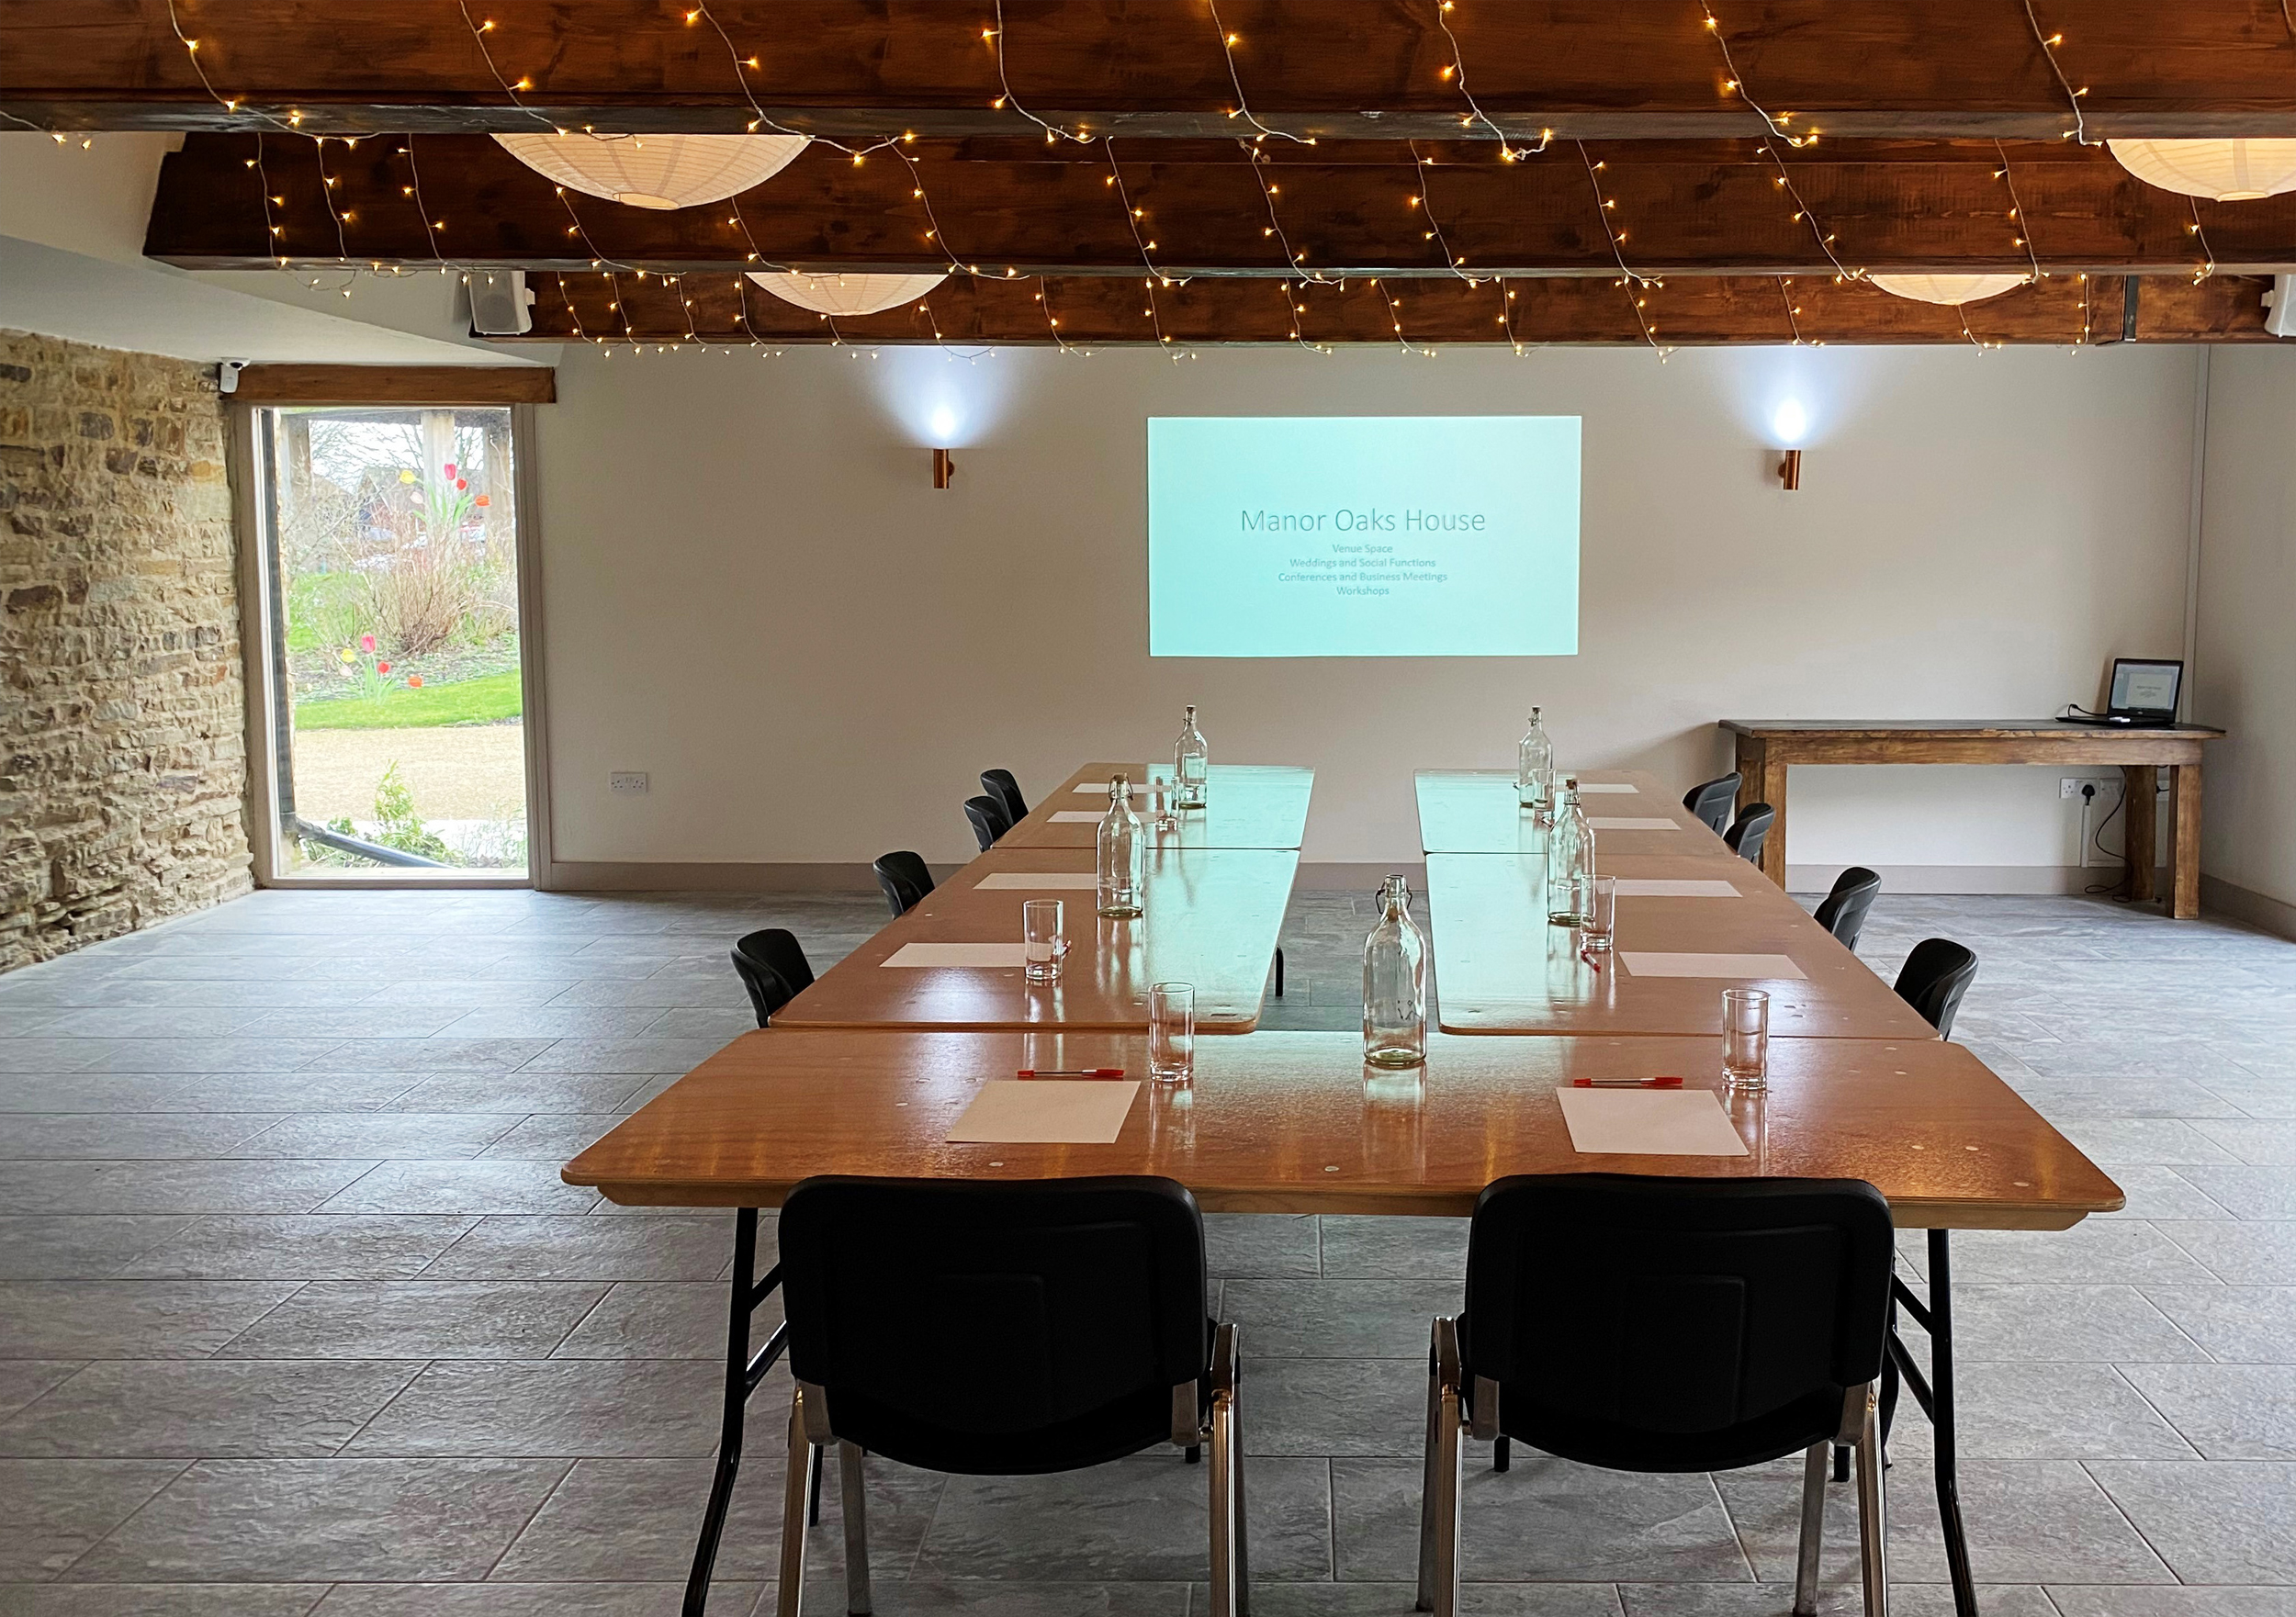 Manor Oaks House Boardroom set up